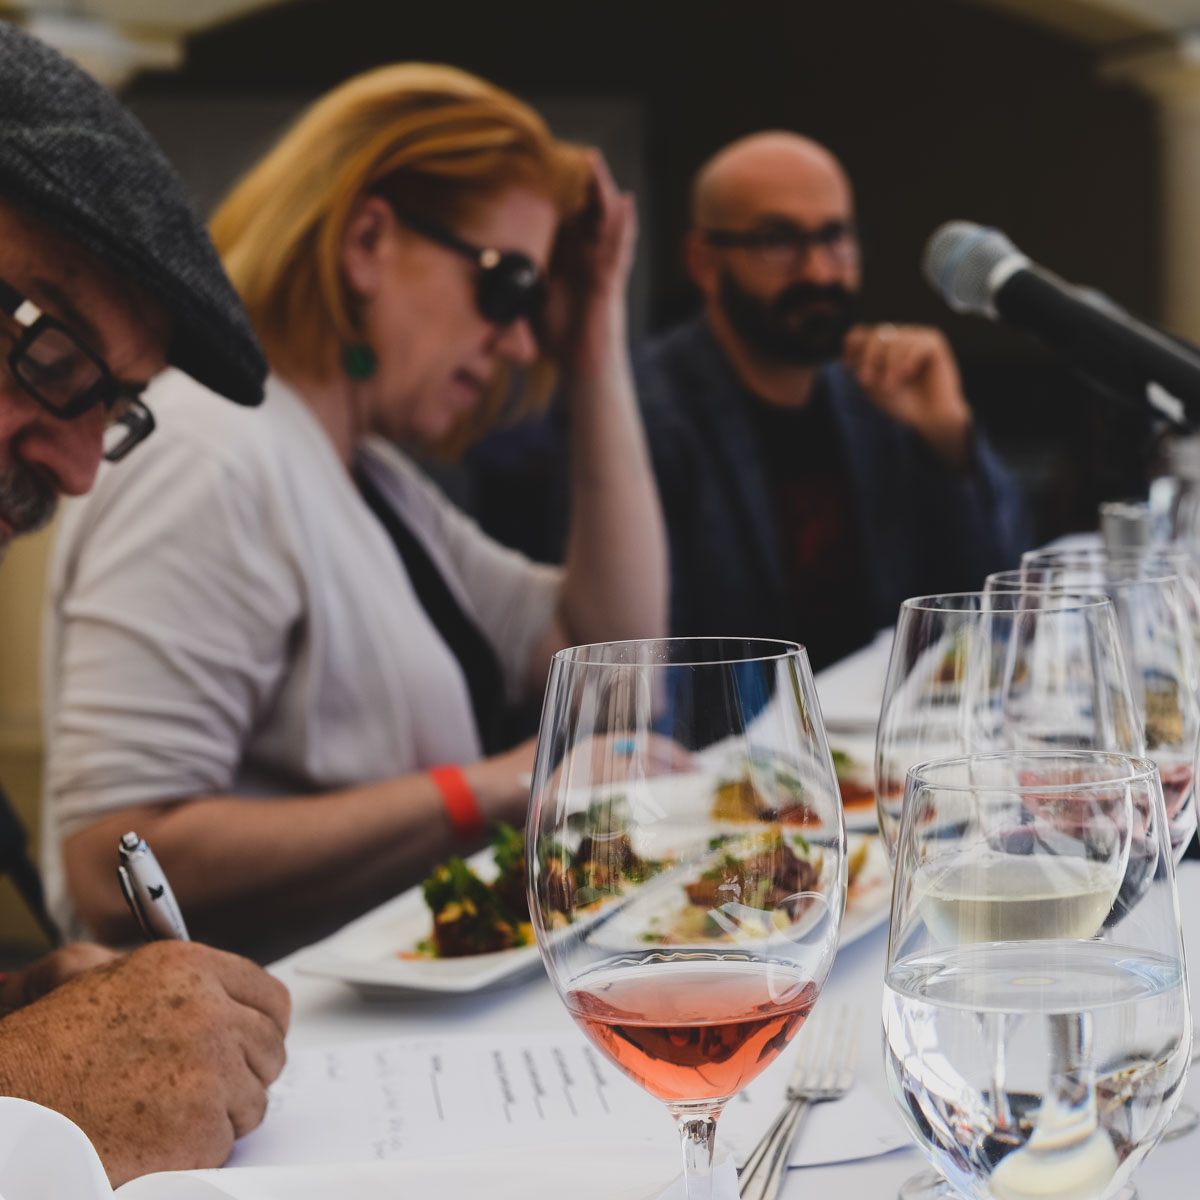 Judges tasting dishes